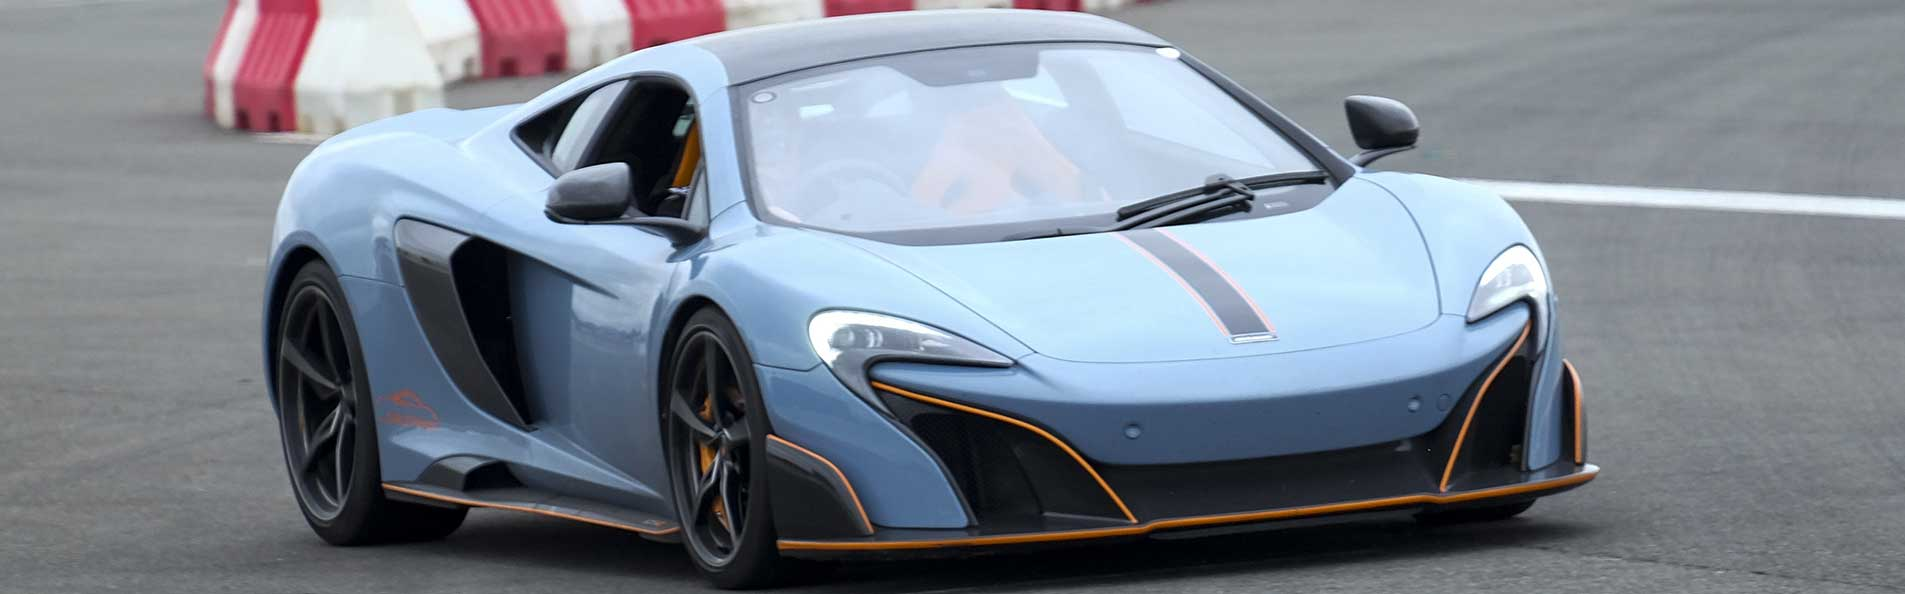 McLaren 675LT experience at The Supercar Event